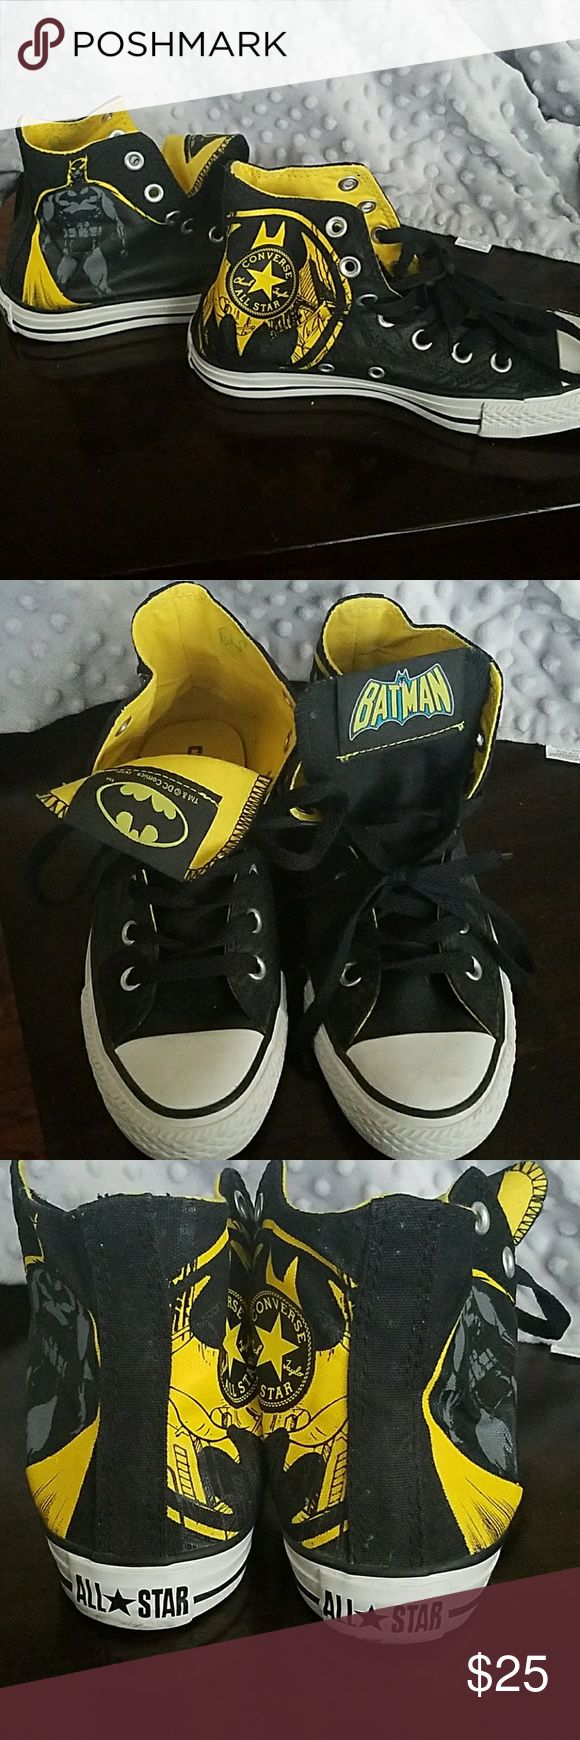 Batman Converse All Star High Tops Batman size 4 in boys/ 6 in women's, worn a few times, like new Converse Shoes Sneakers